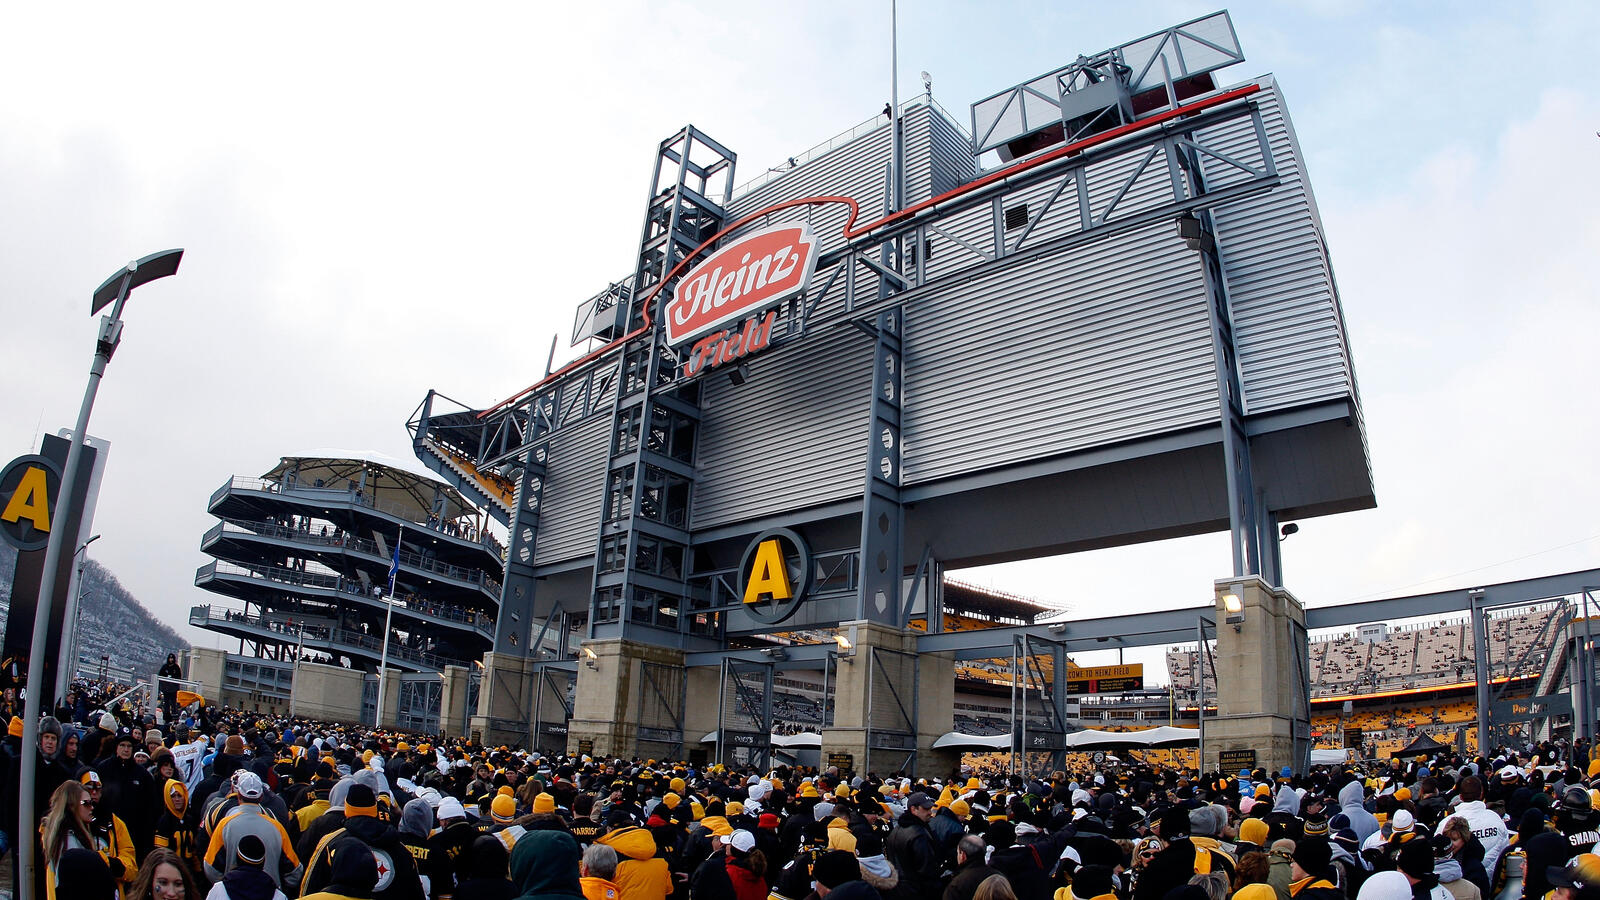 The 2021 Steelers Schedule Is Here!